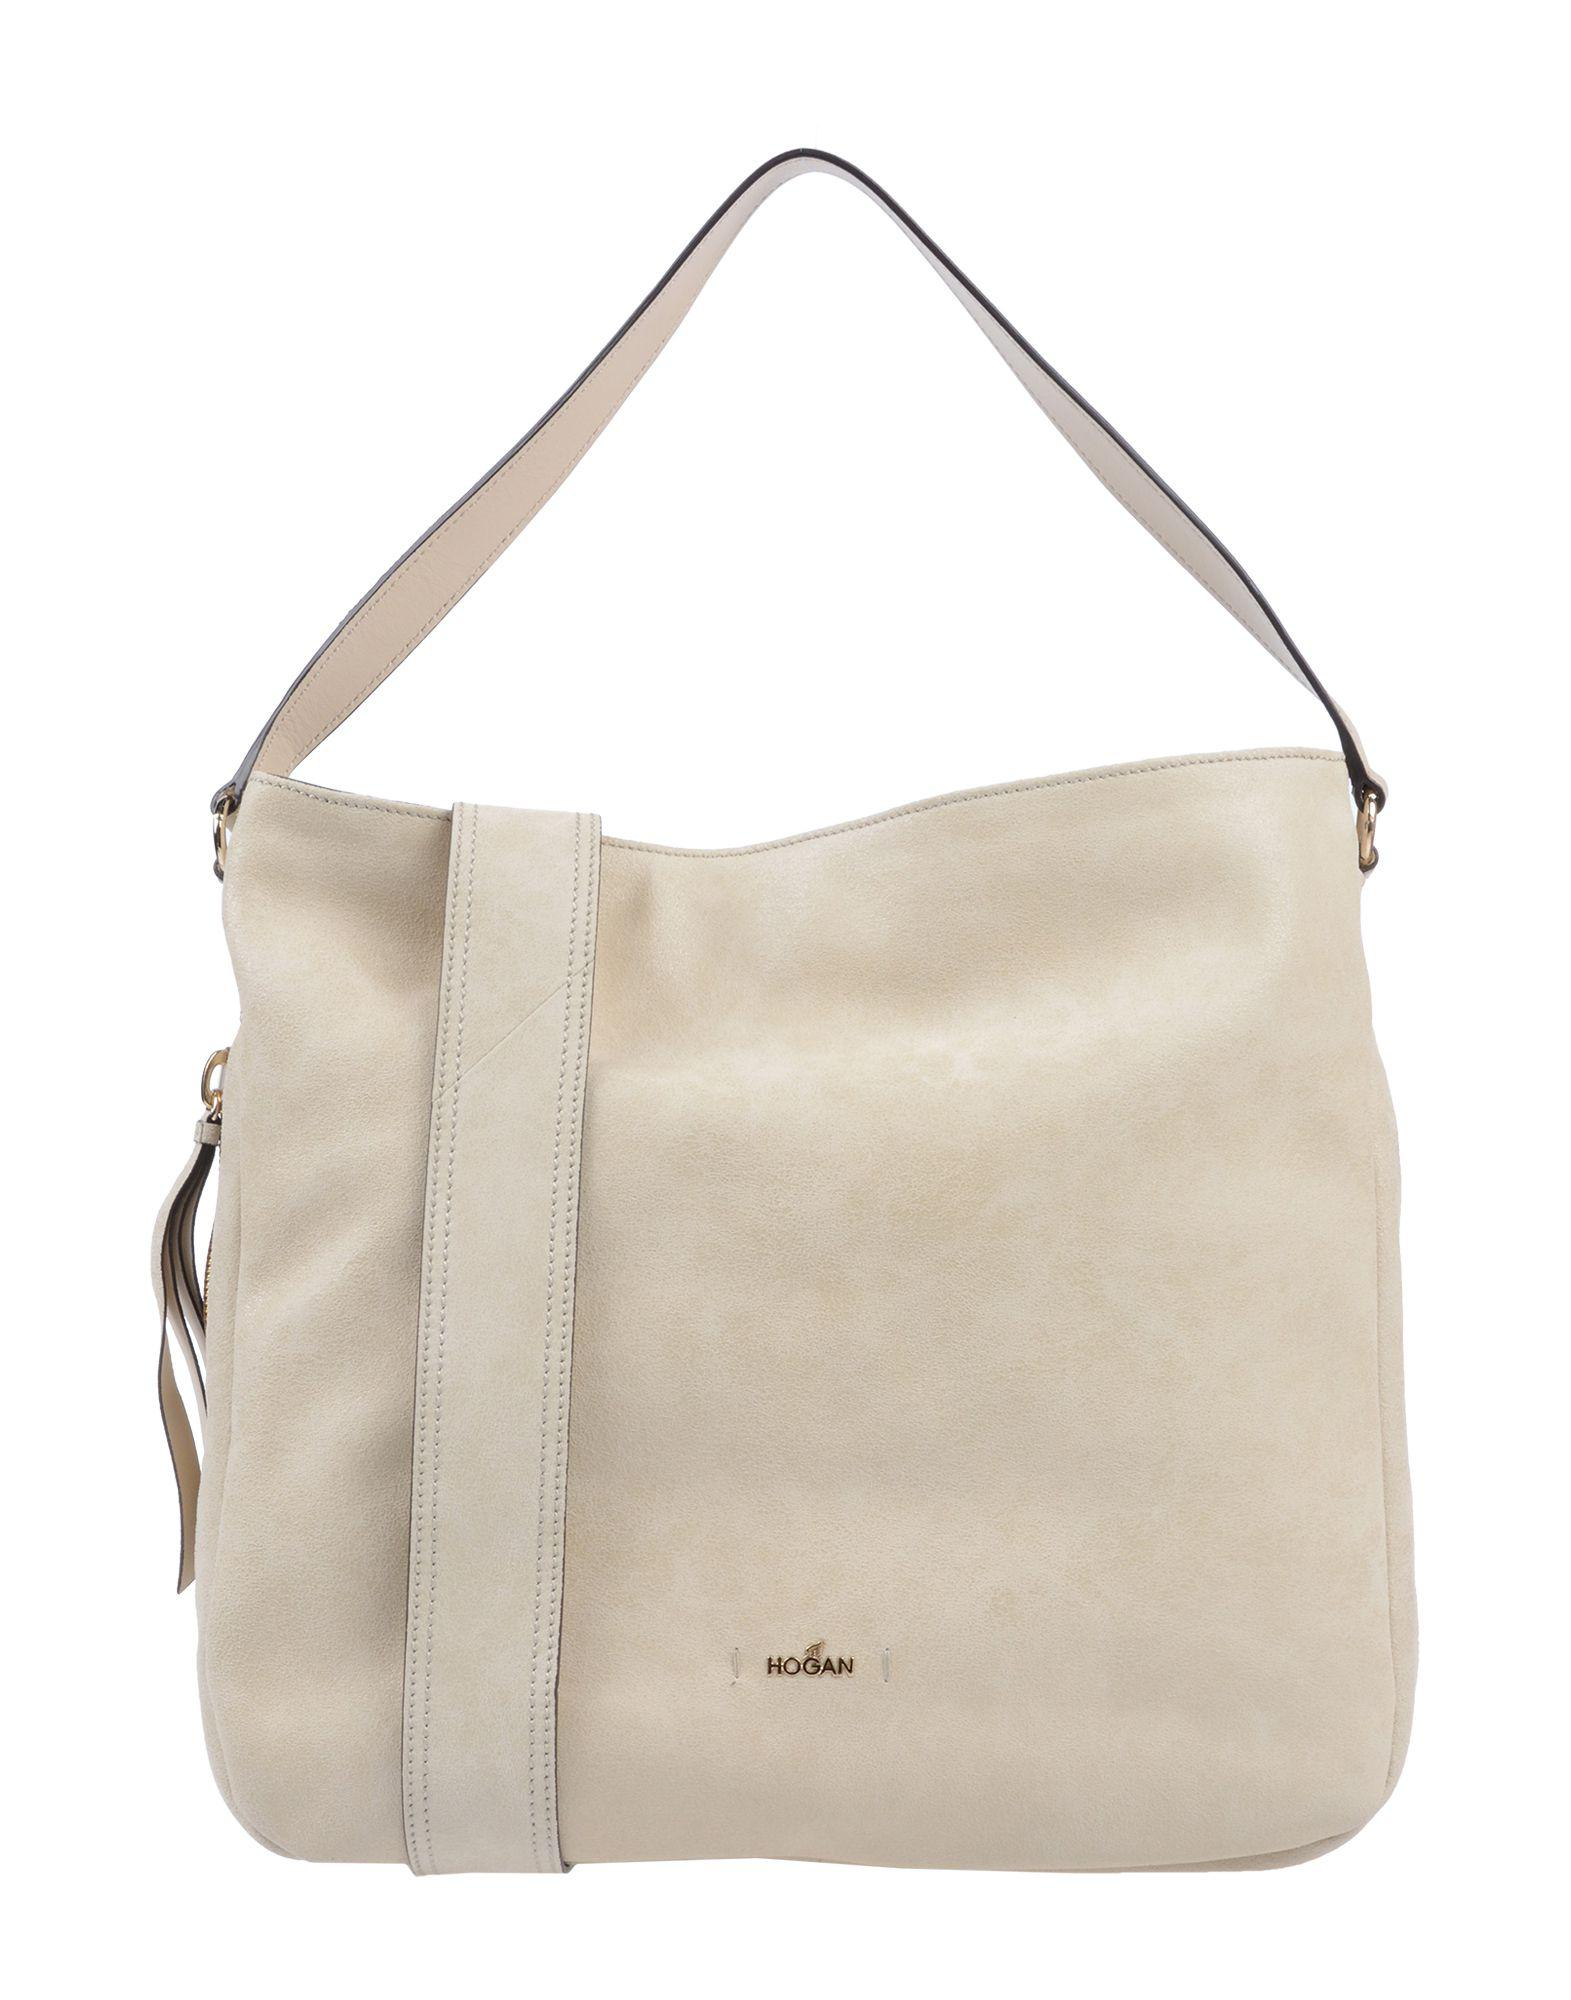 Hogan - Natural Handbag - Lyst. View fullscreen f41f54555d192